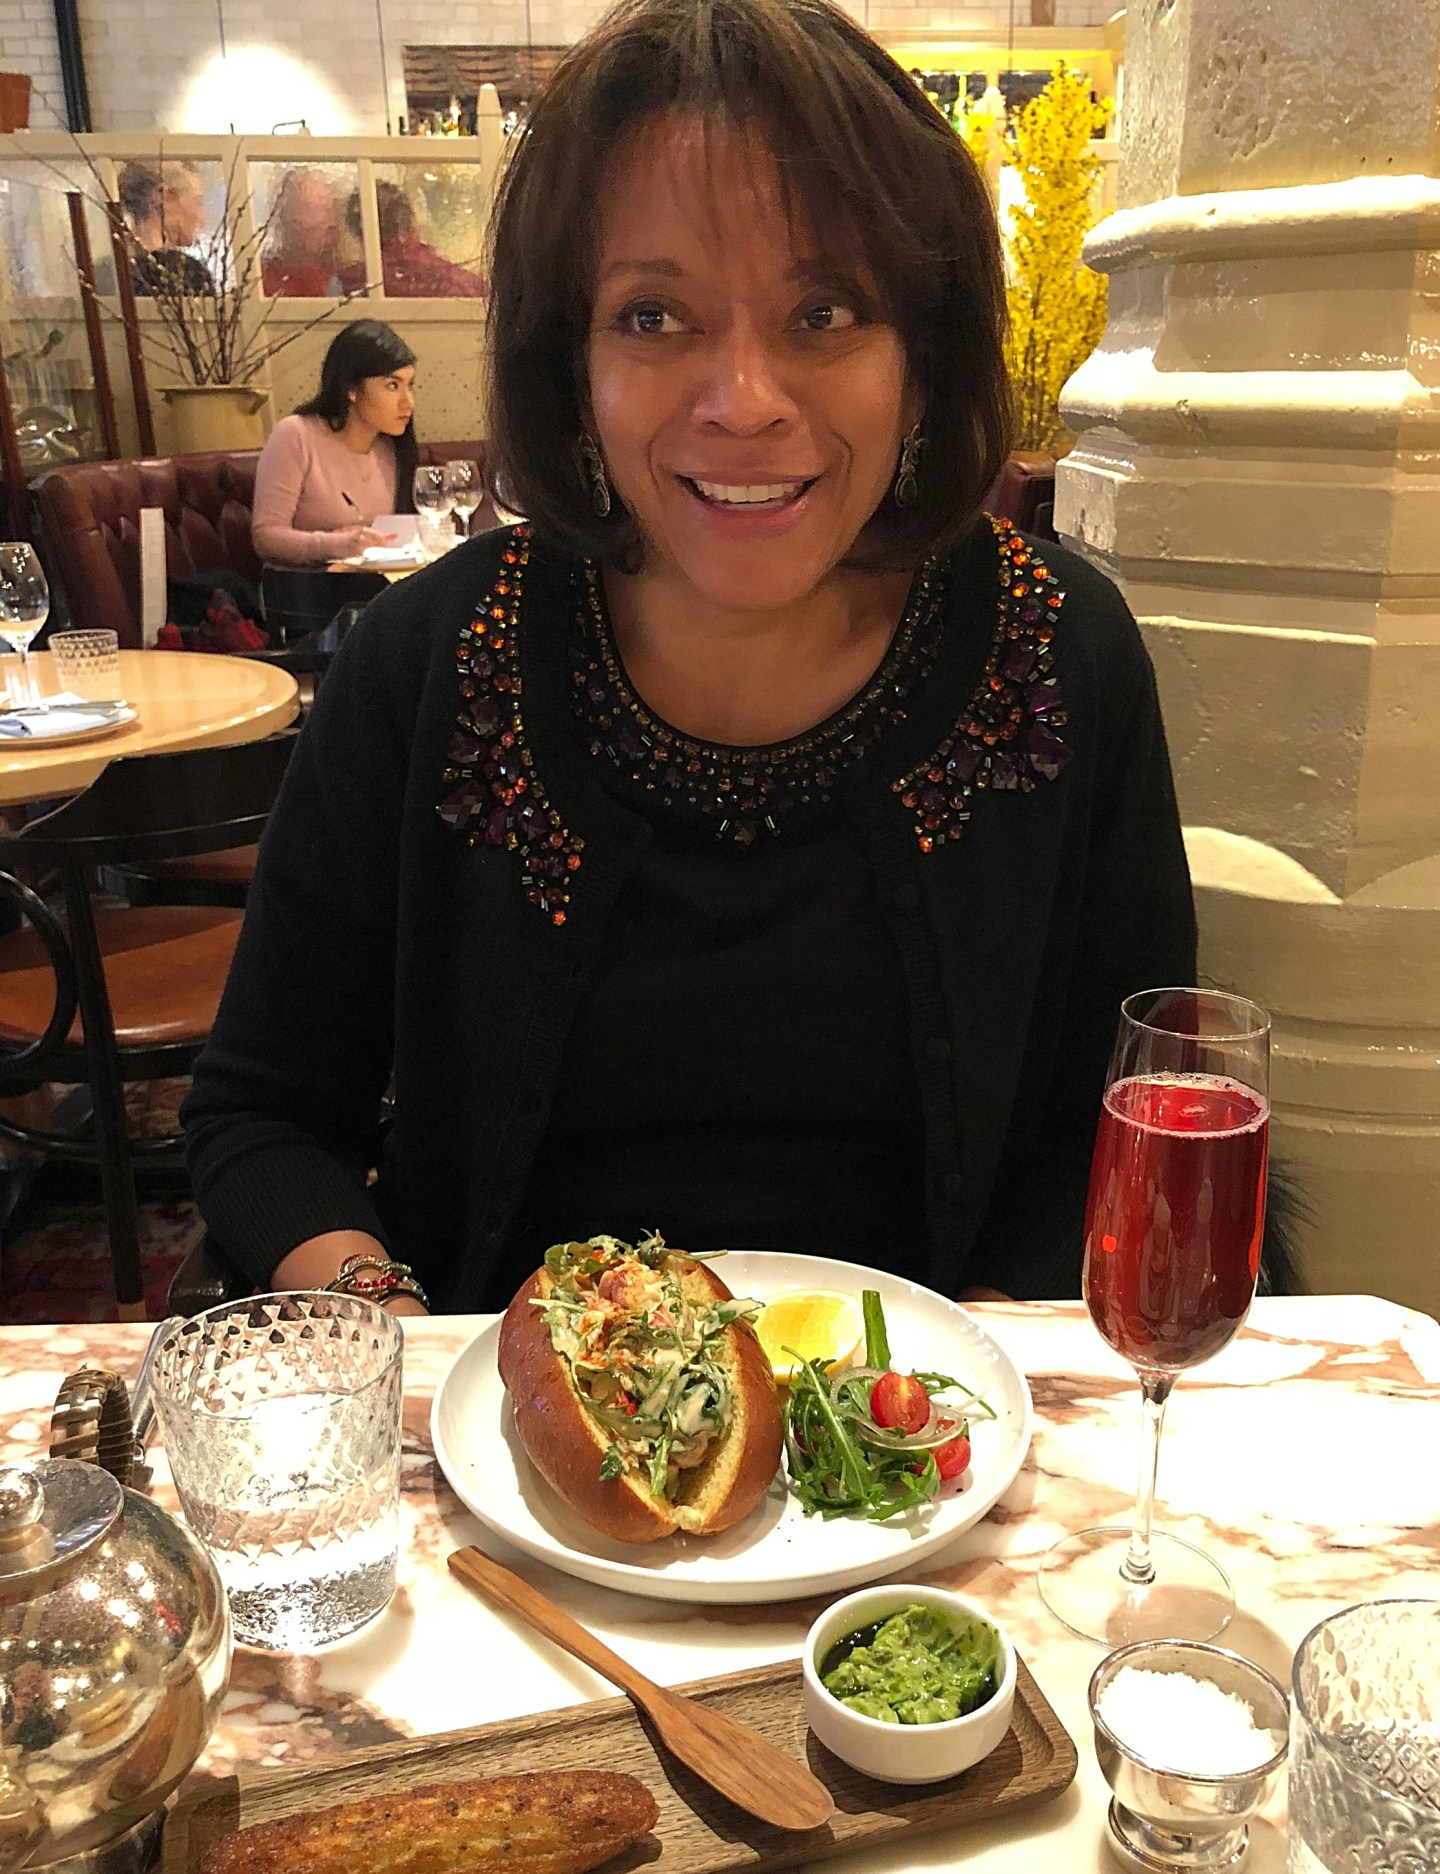 After church brunch at Chiltern Firehouse